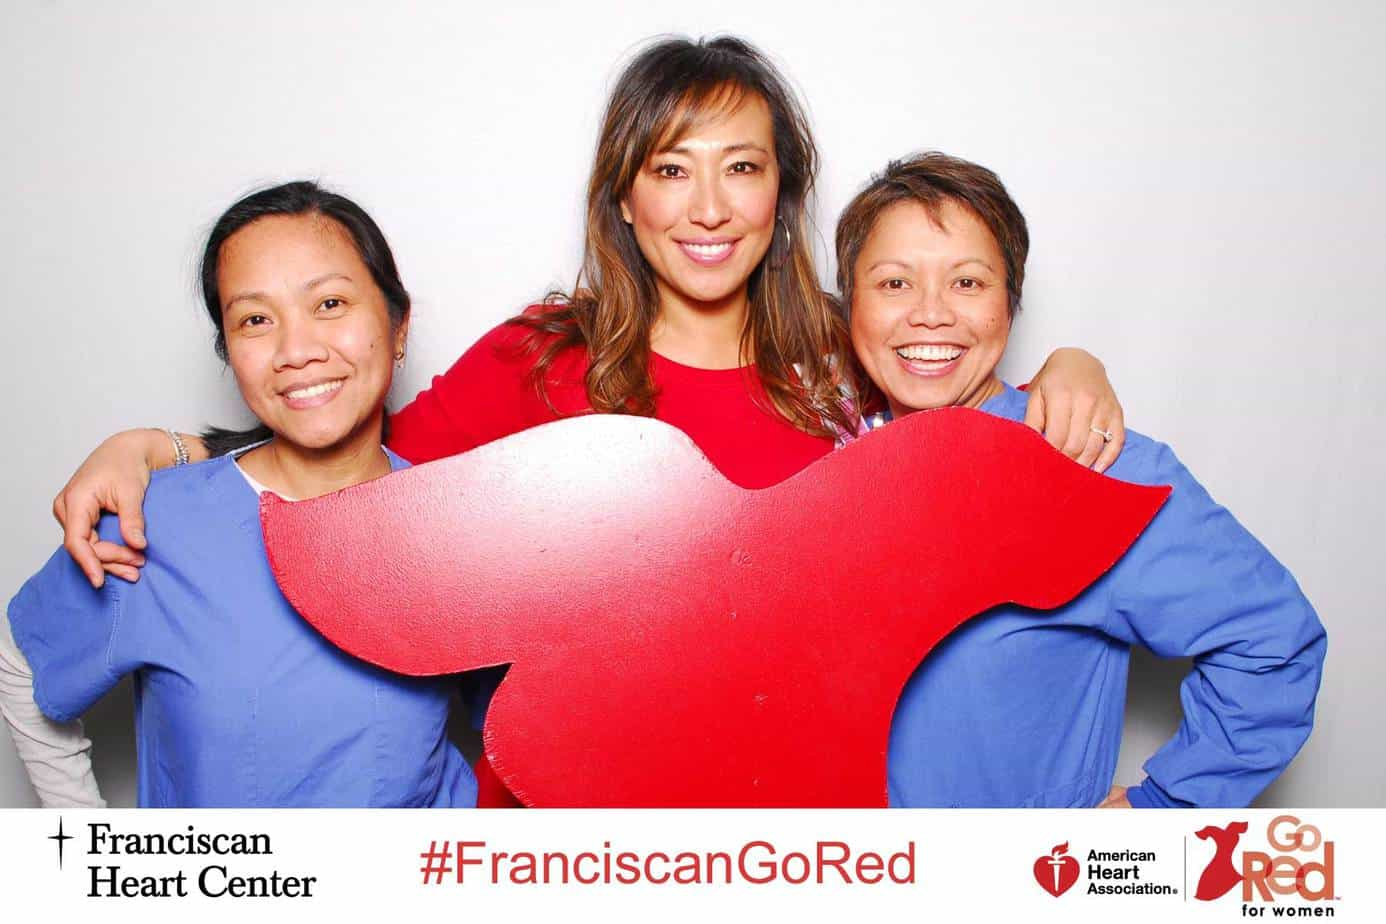 American Heart Association Go Red 1000 Words Photo Booth